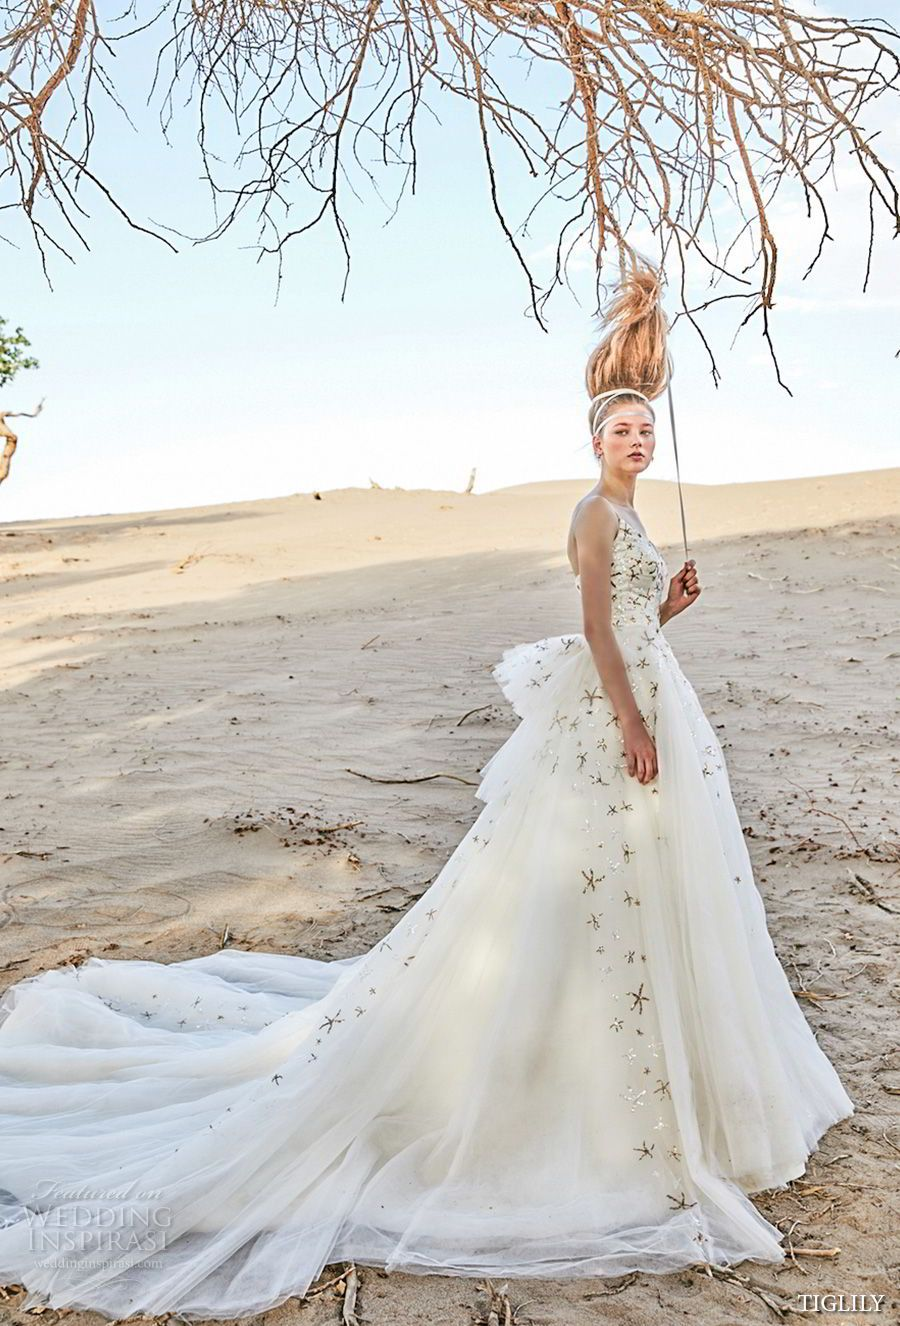 Fairytale ball gown wedding dresses  TIGLILY  Wedding Dresses  fairytale  Pinterest  Chapel train